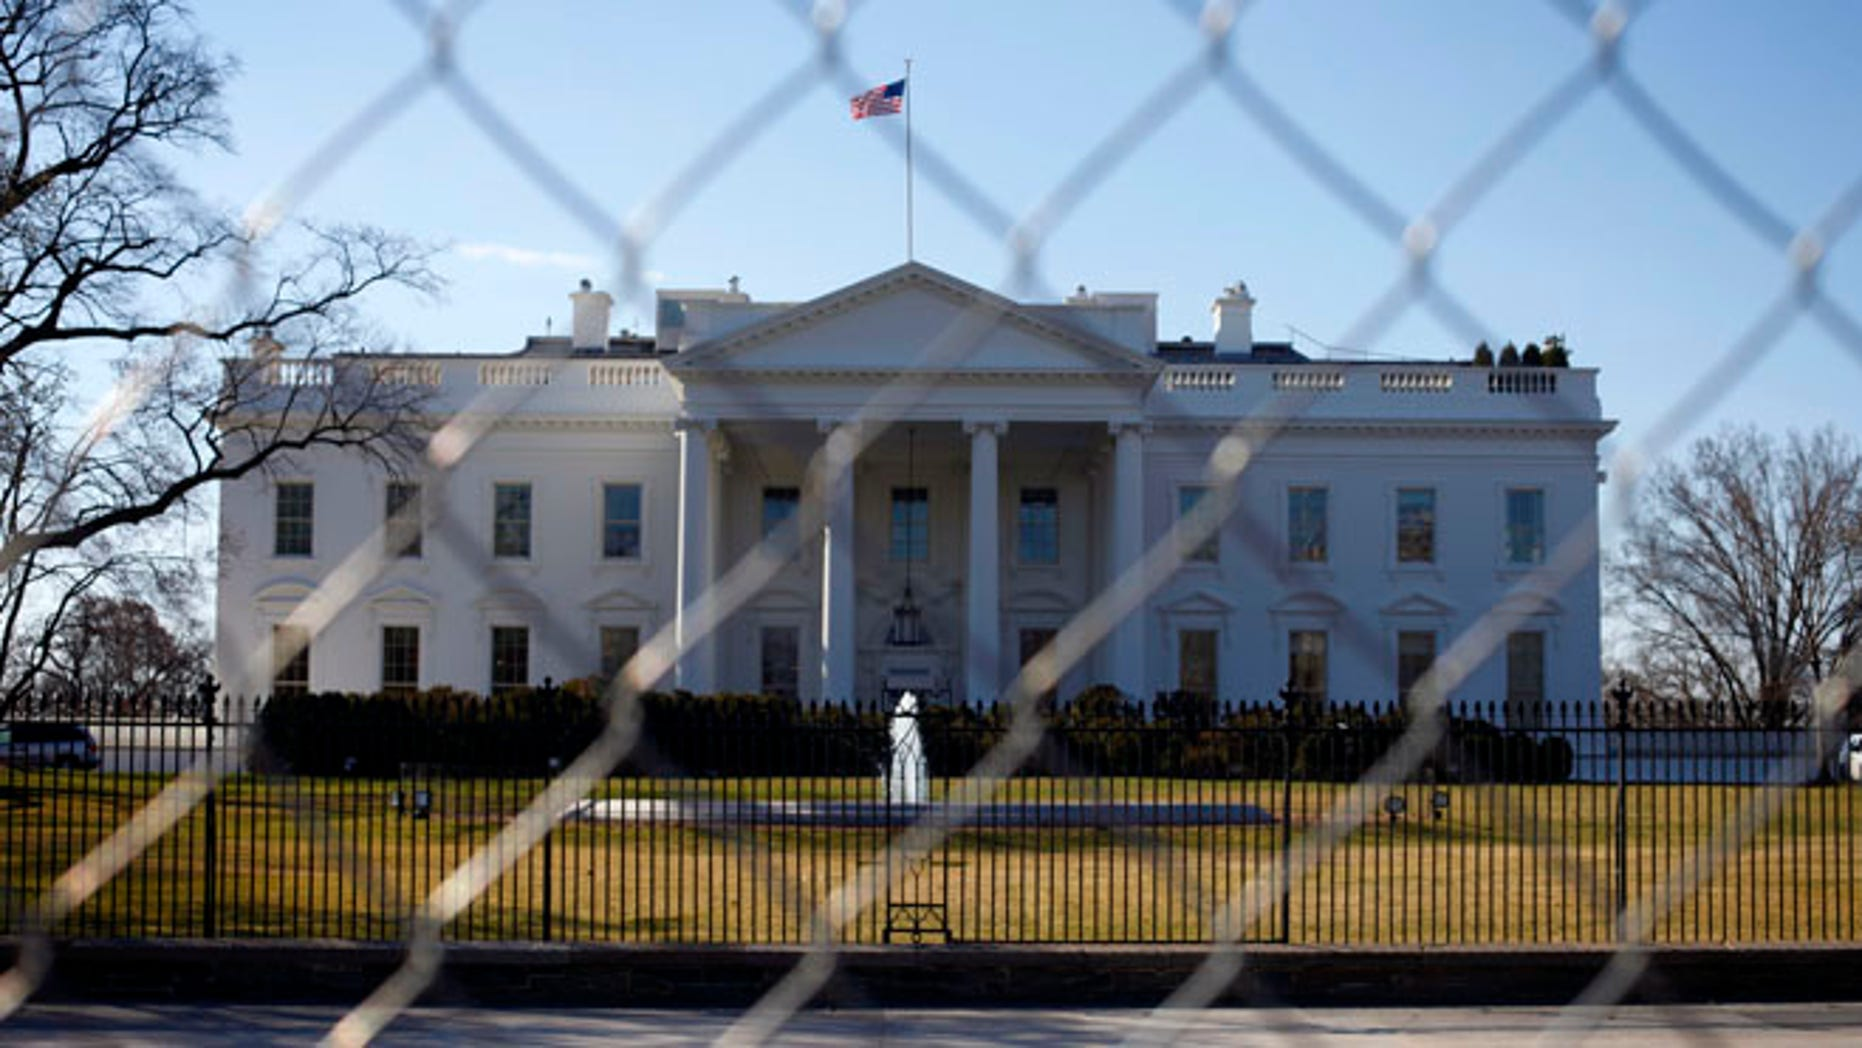 March 4, 2013: The White House is seen through a chain-link fence in Washington.